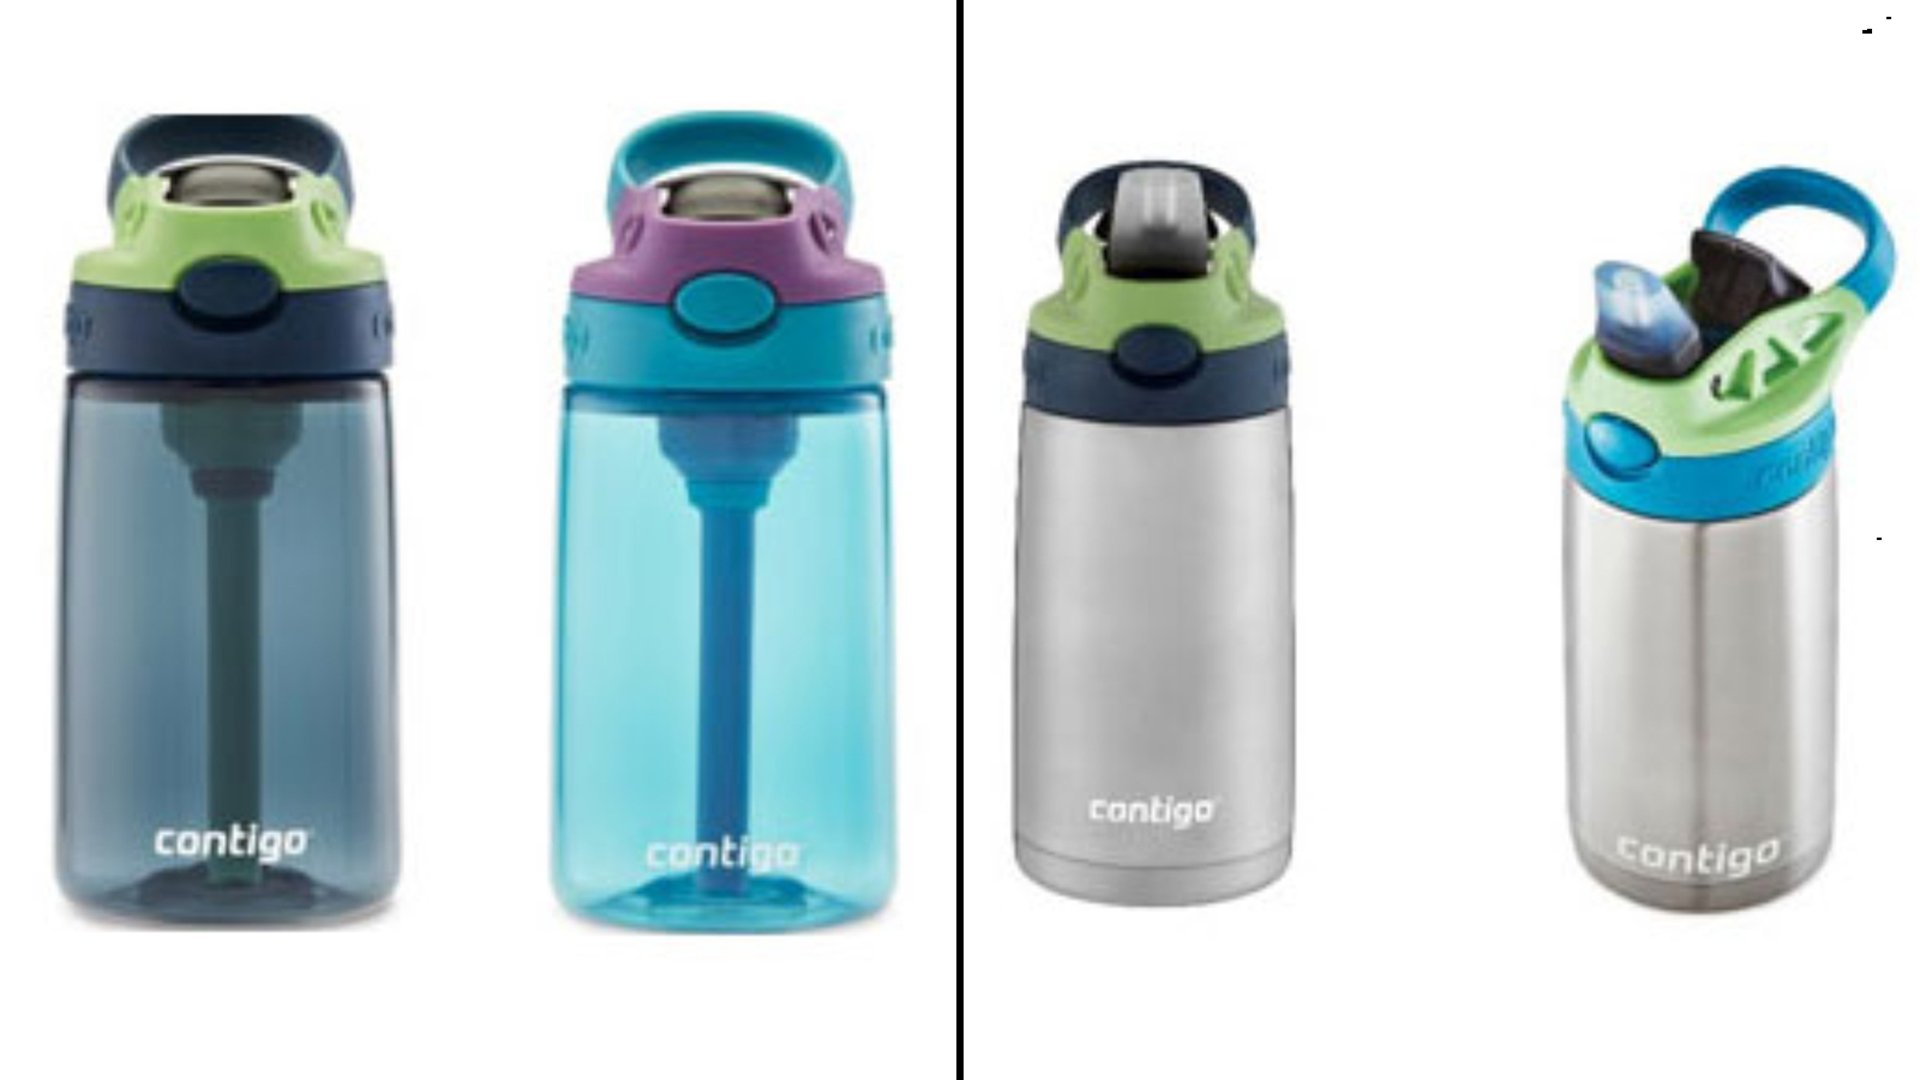 Contigo reannounced a recall of about 5.7 million of its kids water bottles on Feb. 19, 2020. Credit: CPSC.gov)